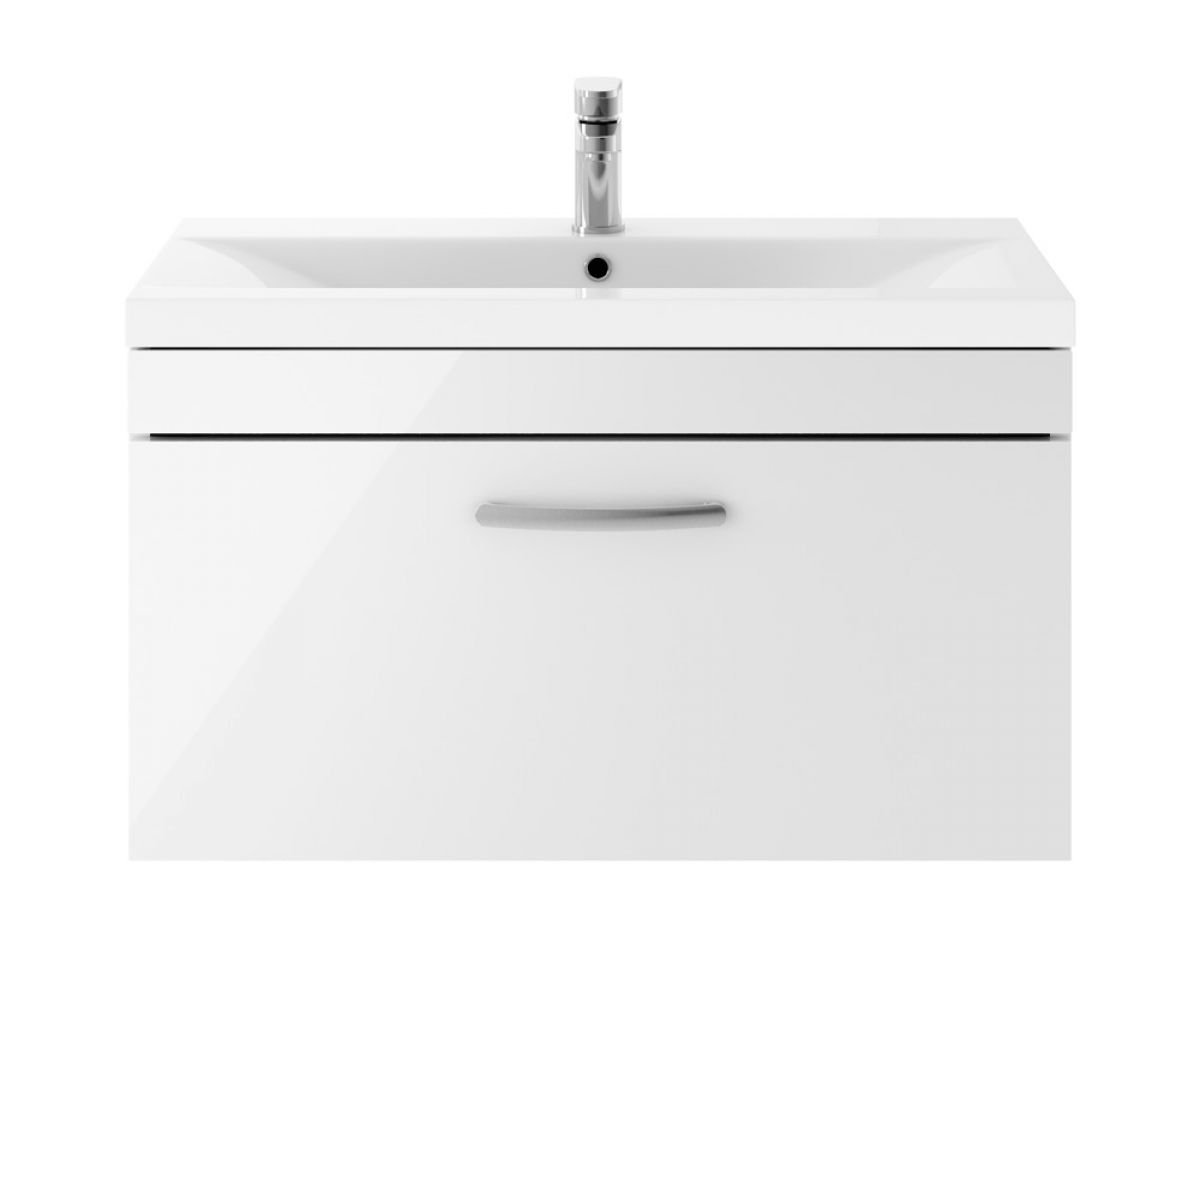 Premier Athena Gloss White 1 Drawer Wall Hung Vanity Unit 800mm with Mid Edge Basin